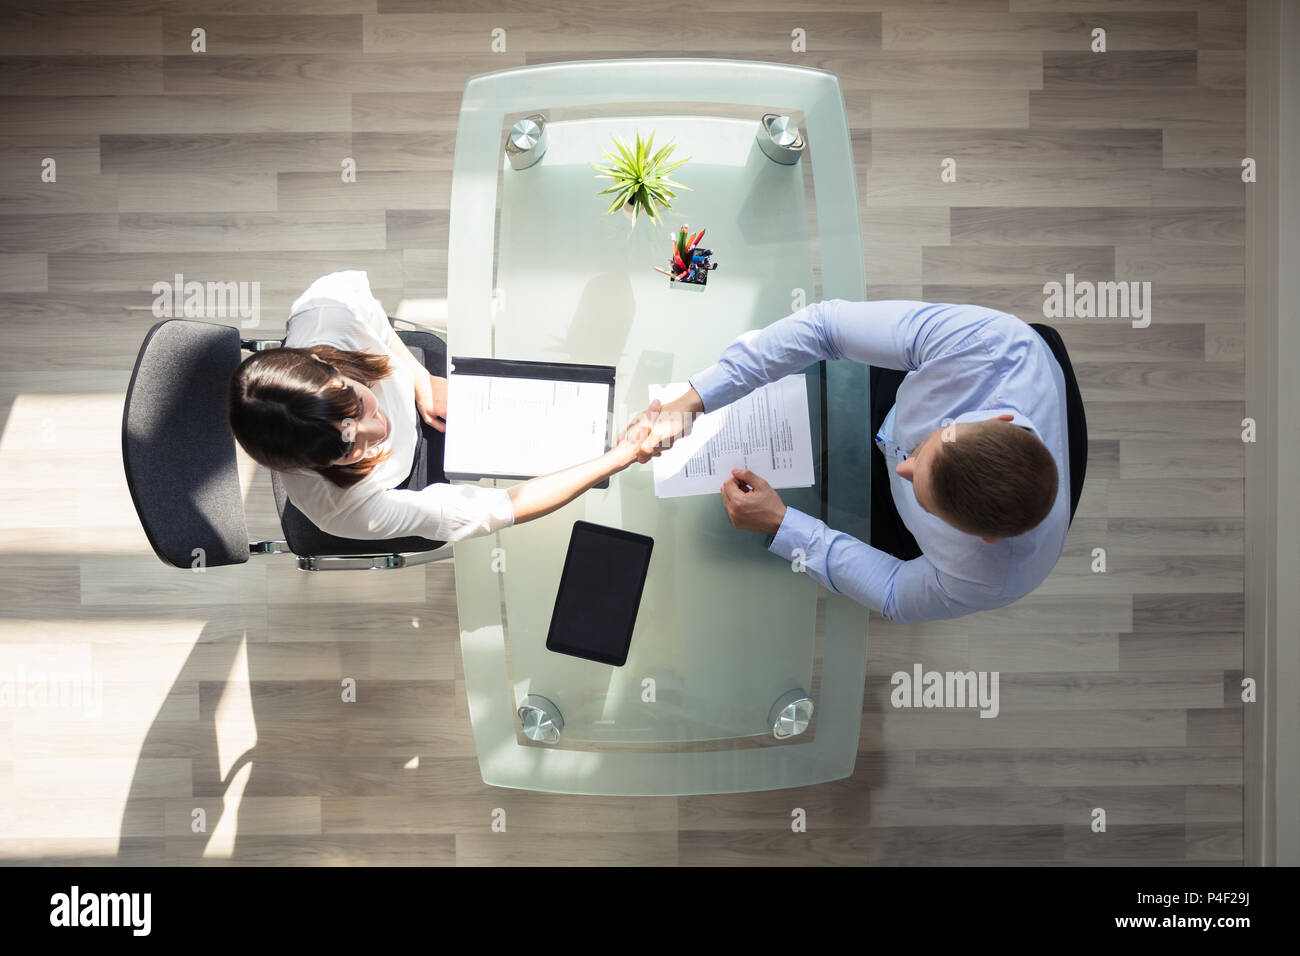 Elevated View Of Businessman Shaking Hand With Female Applicant At Workplace - Stock Image